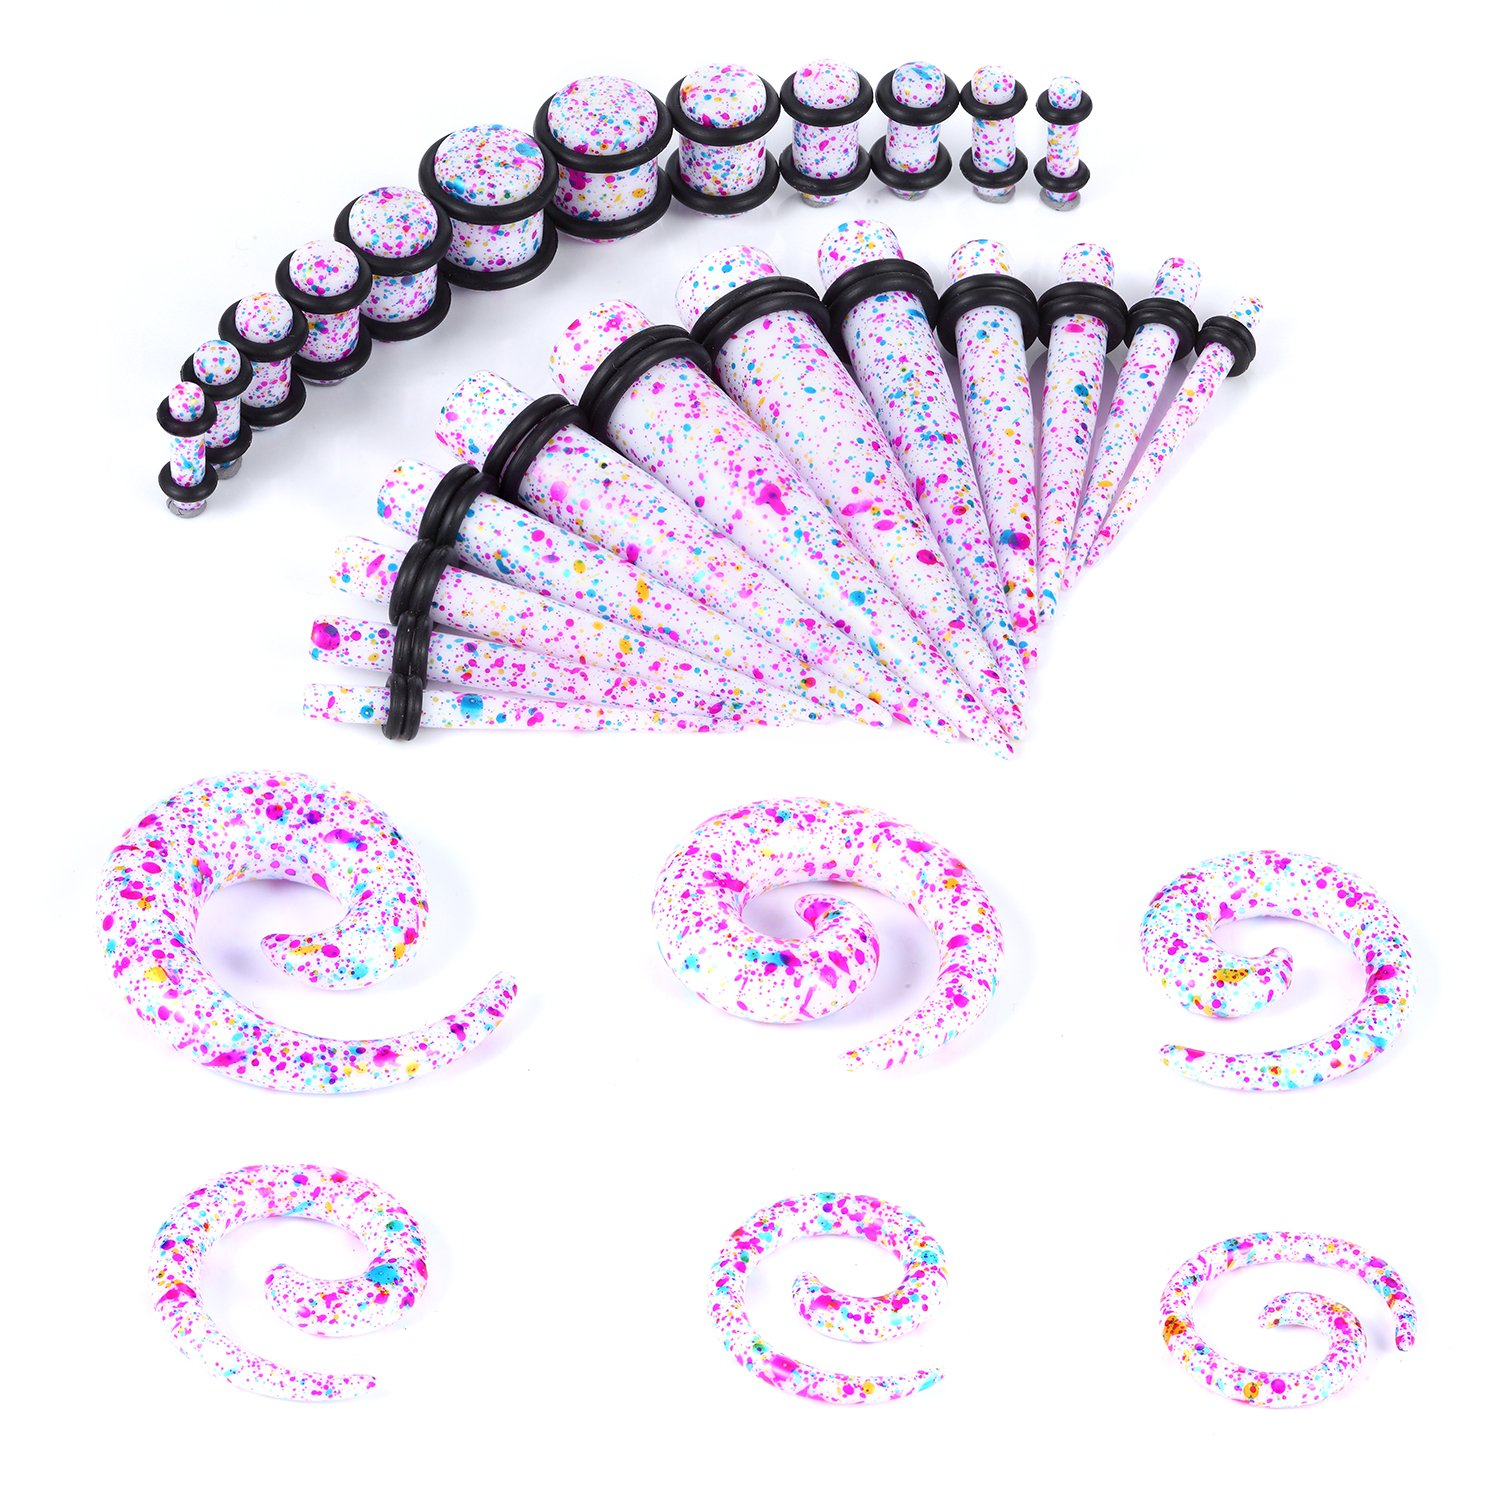 BodyJ4You 36 Pieces Taper Kit Tie Dye Spiral Tapers and Plugs 8G-00G Stretching Kit -18 Pairs GK0247